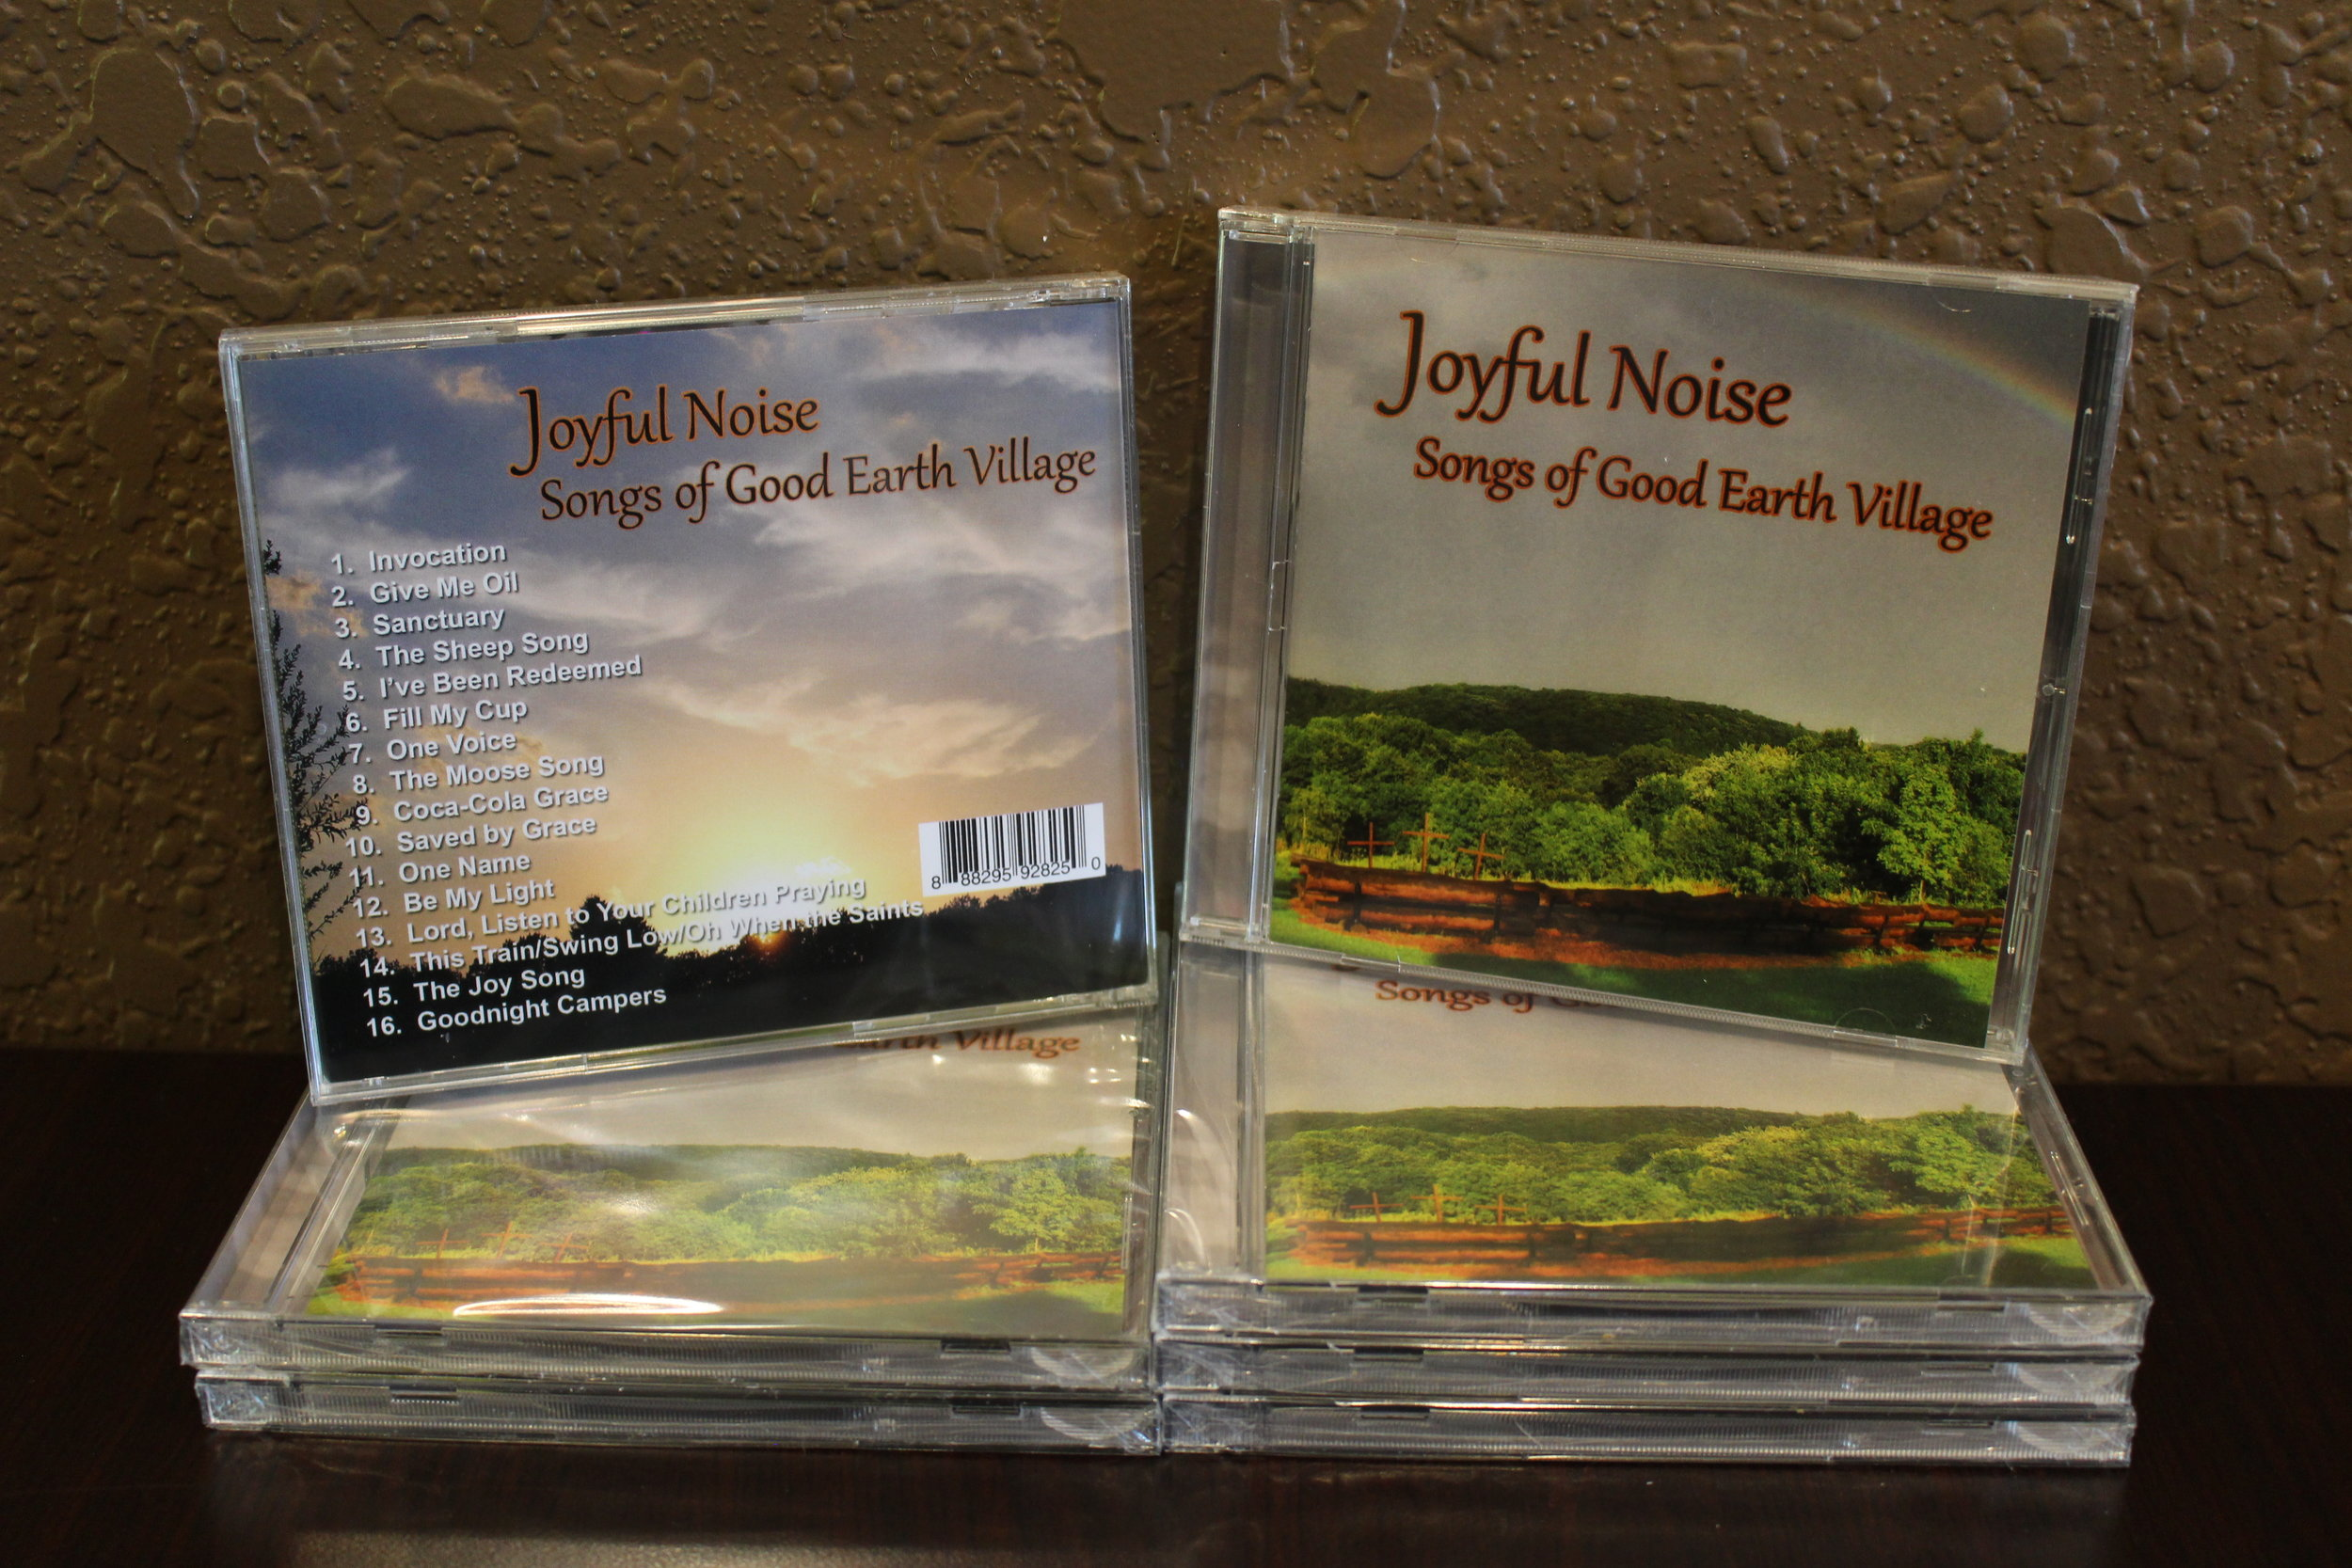 Item:  Joyful Noise CD, Recorded 2019  Songs Include:  JOY Song, One Voice, Give Me Oil, The Sheep Song, Sanctuary, Moose Song, This Train, Be My Light and many more!  Price:  $15